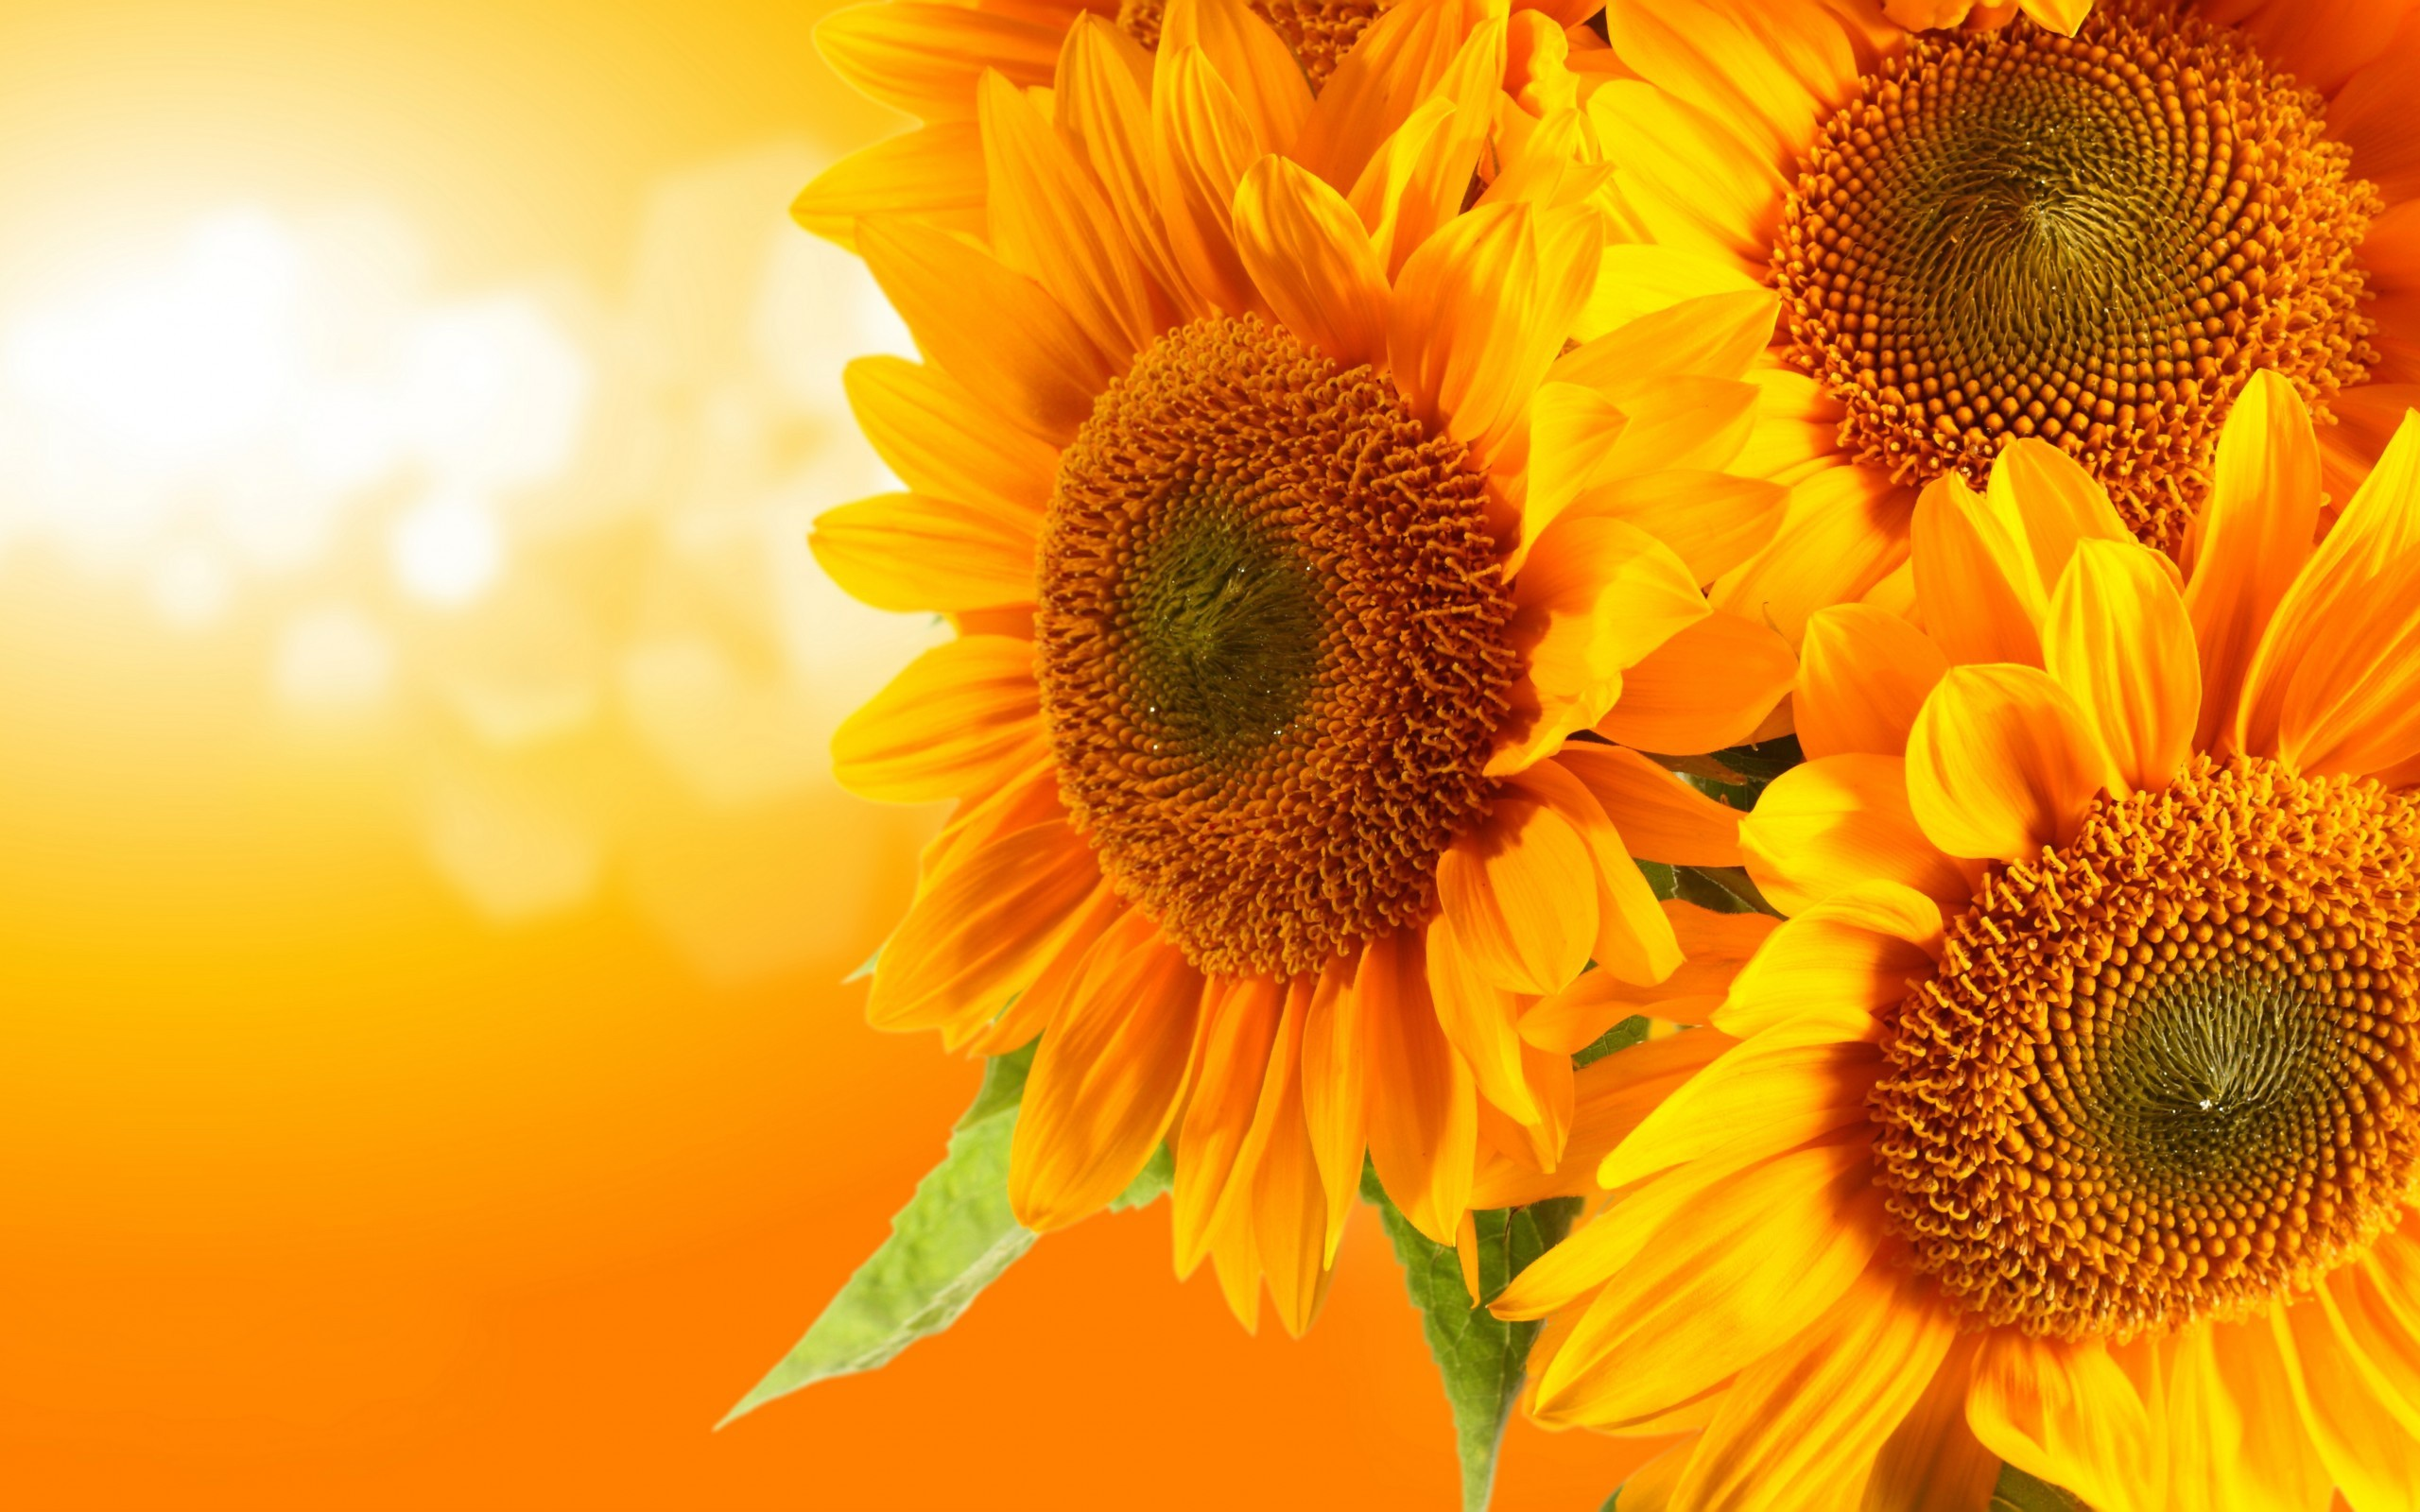 sunflower wallpapers (72+ images)